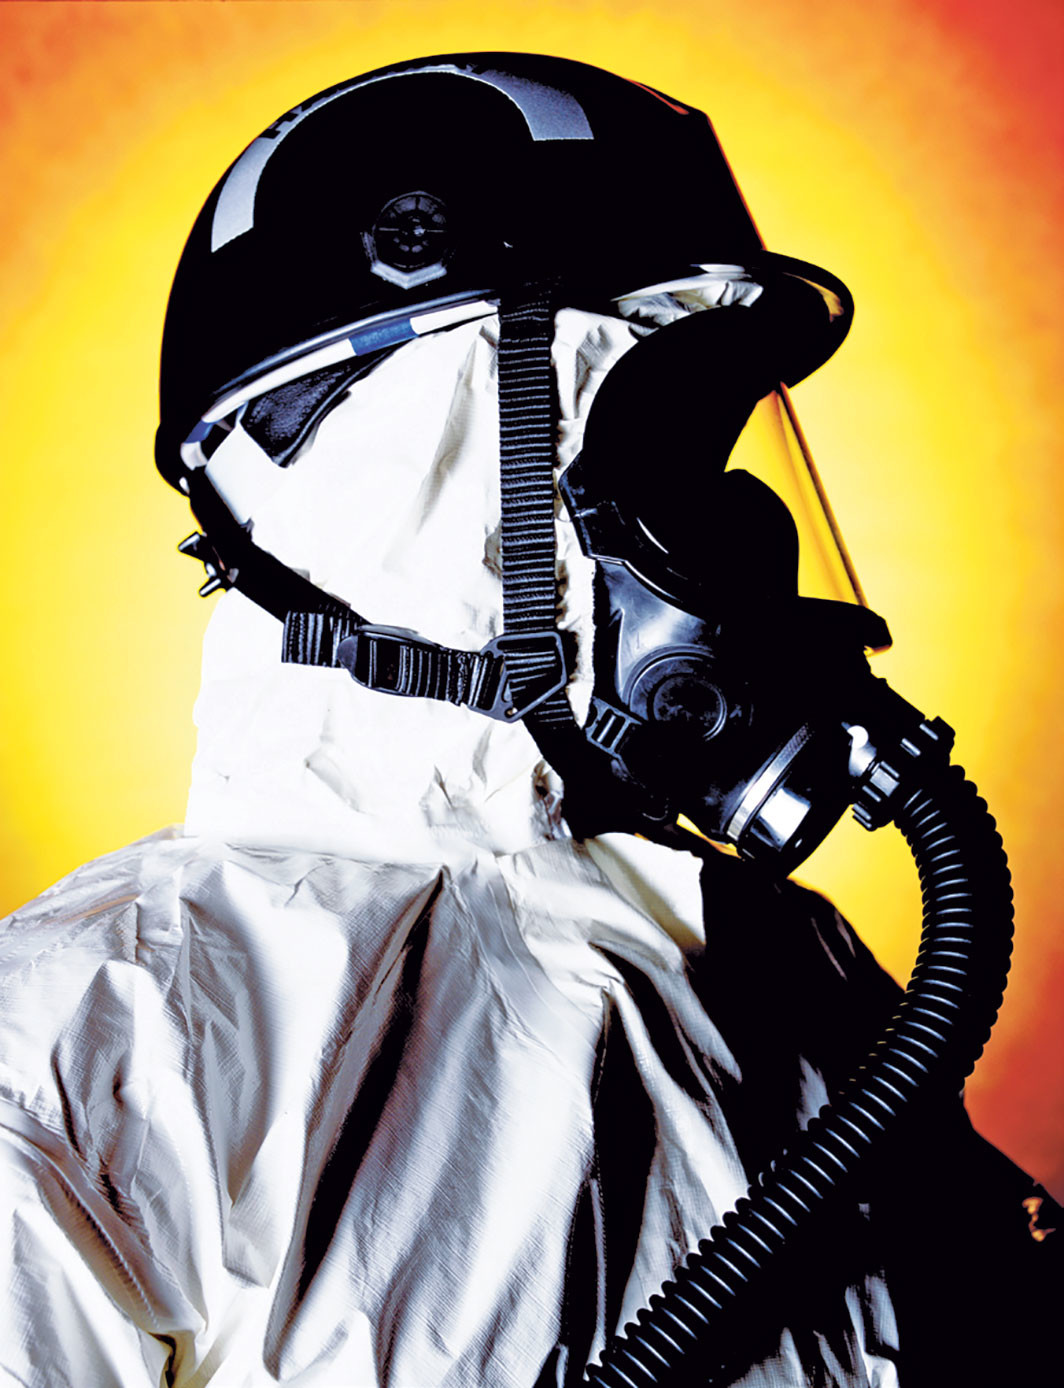 "Andres Serrano, Thomas Buda, Hazmat Chemical Biological Weapons Reponse Team (America), 2002, Cibachrome, 44 × 37"". © Andres Serrano, Courtesy the artist and Galerie Nathalie Obadia Paris/Brussels"